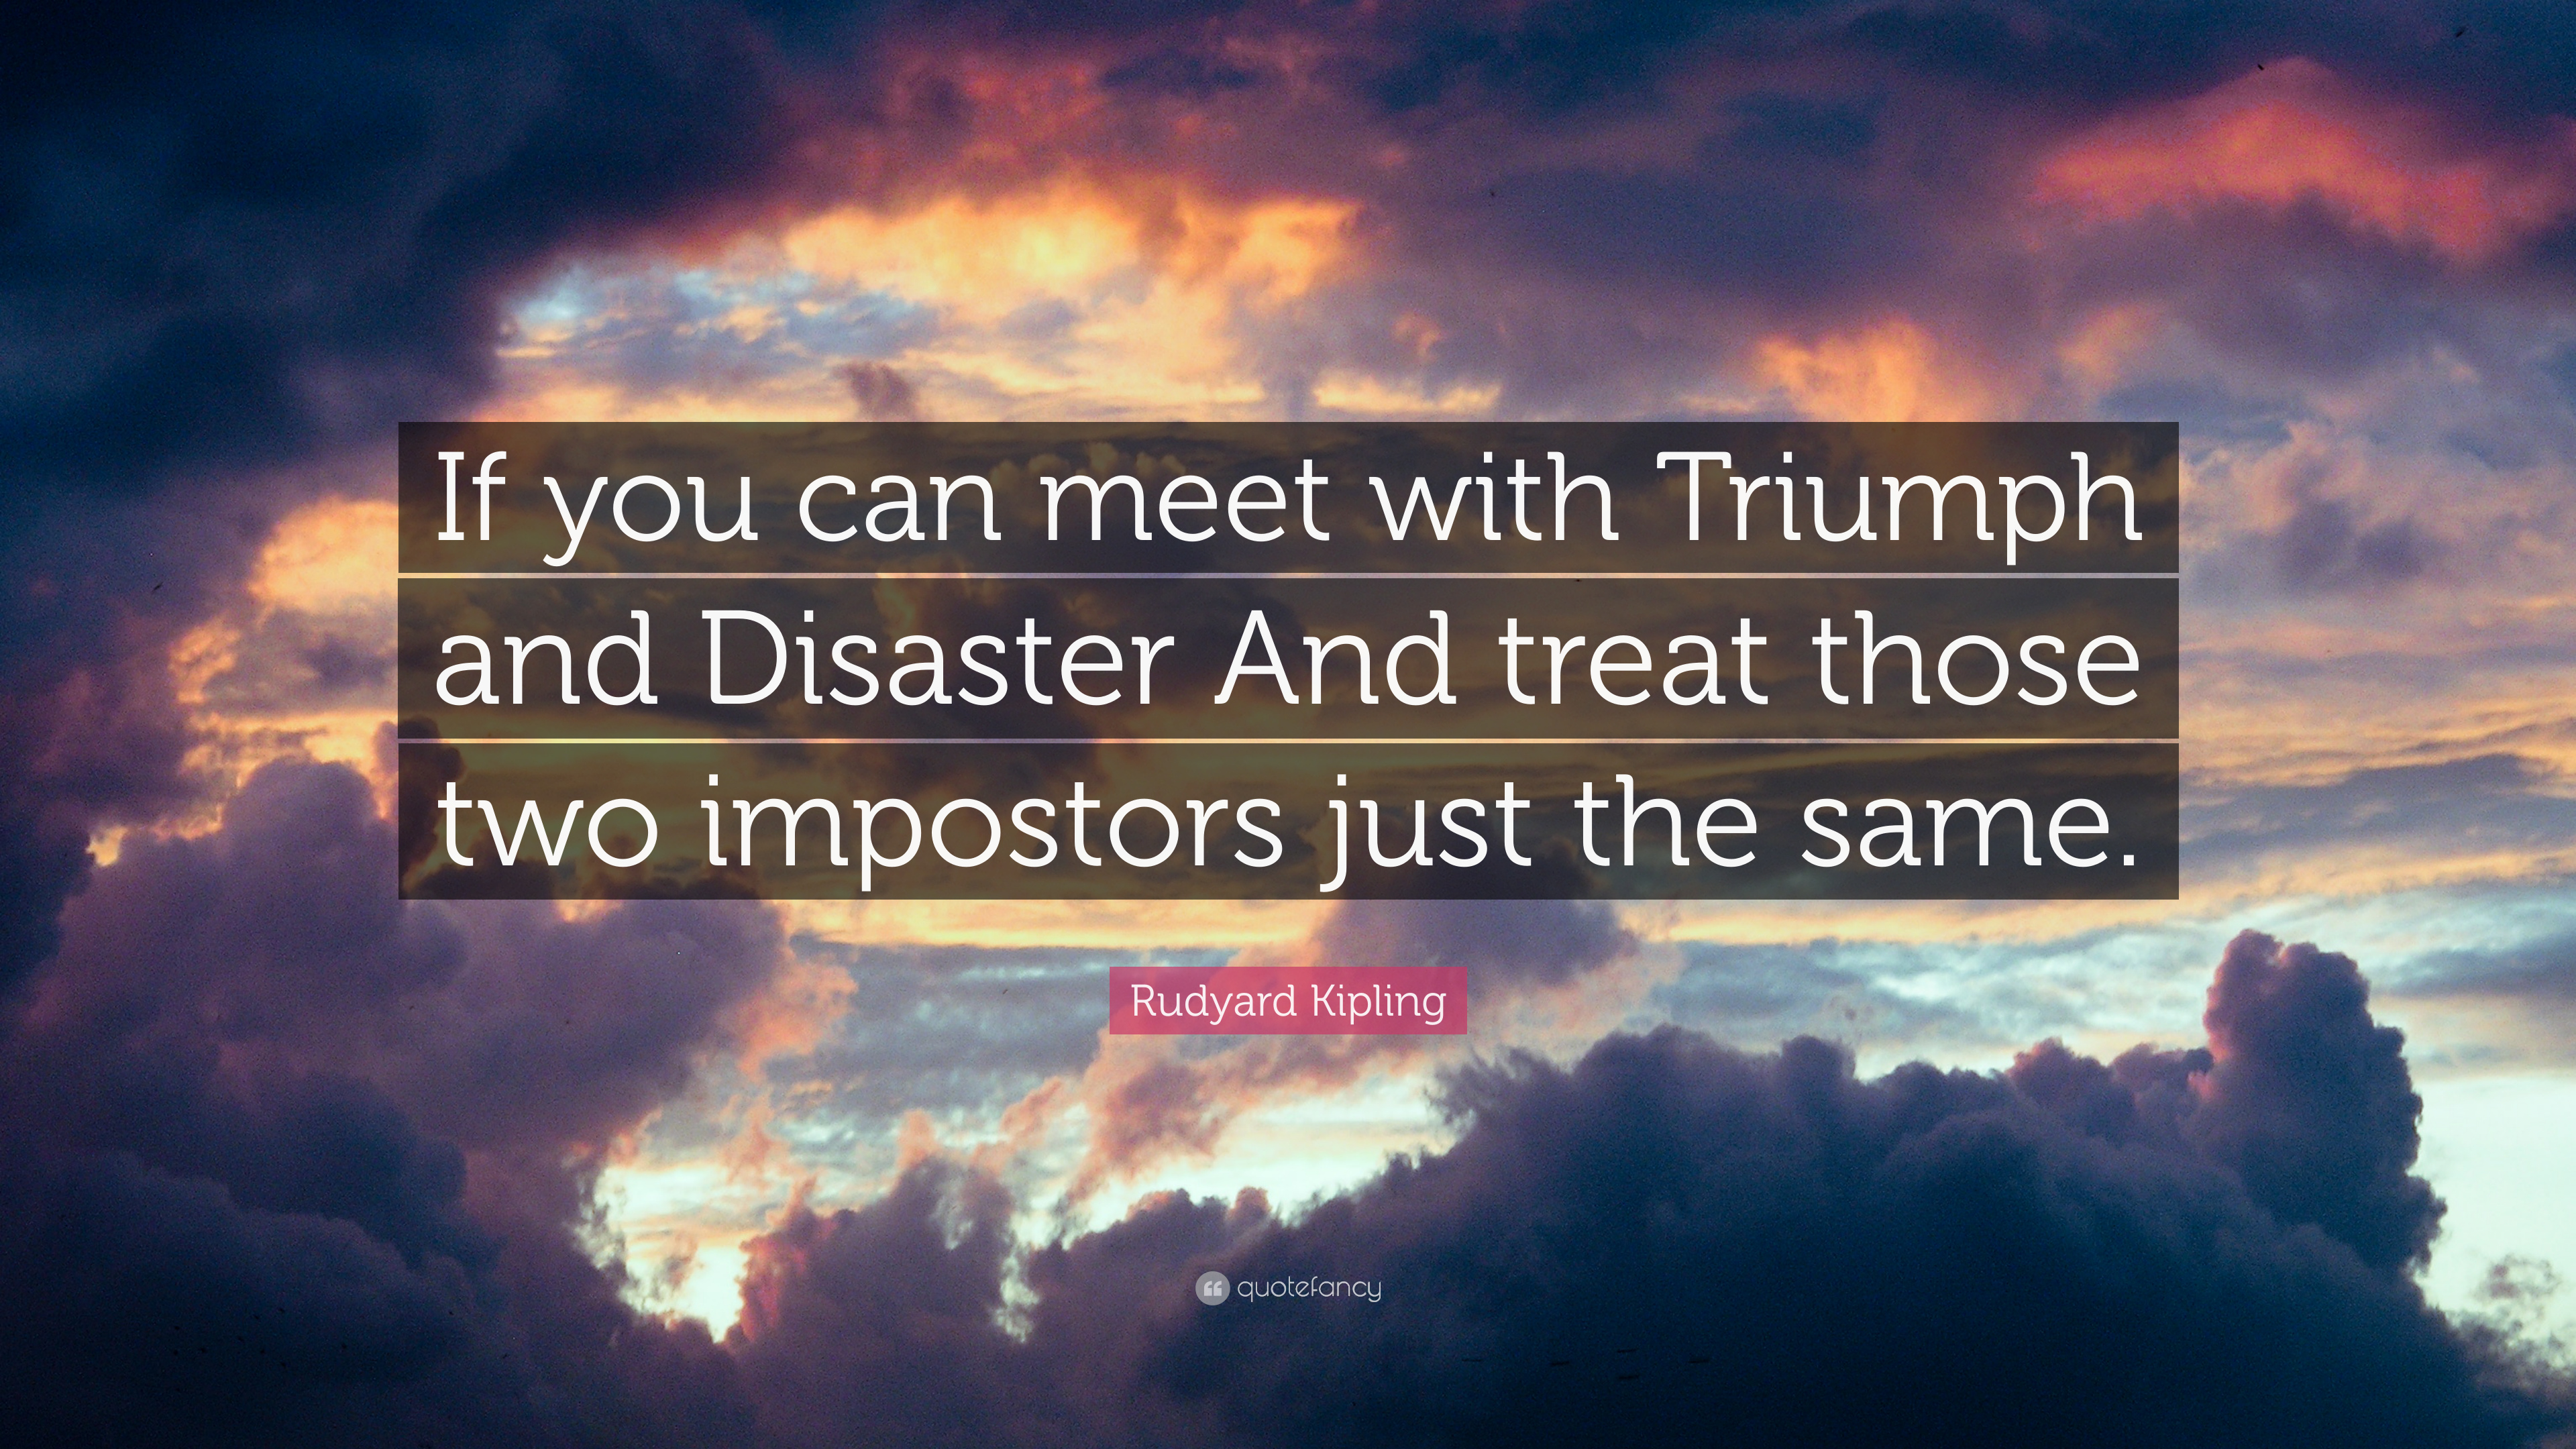 rudyard kipling quotes if you can meet with triumph